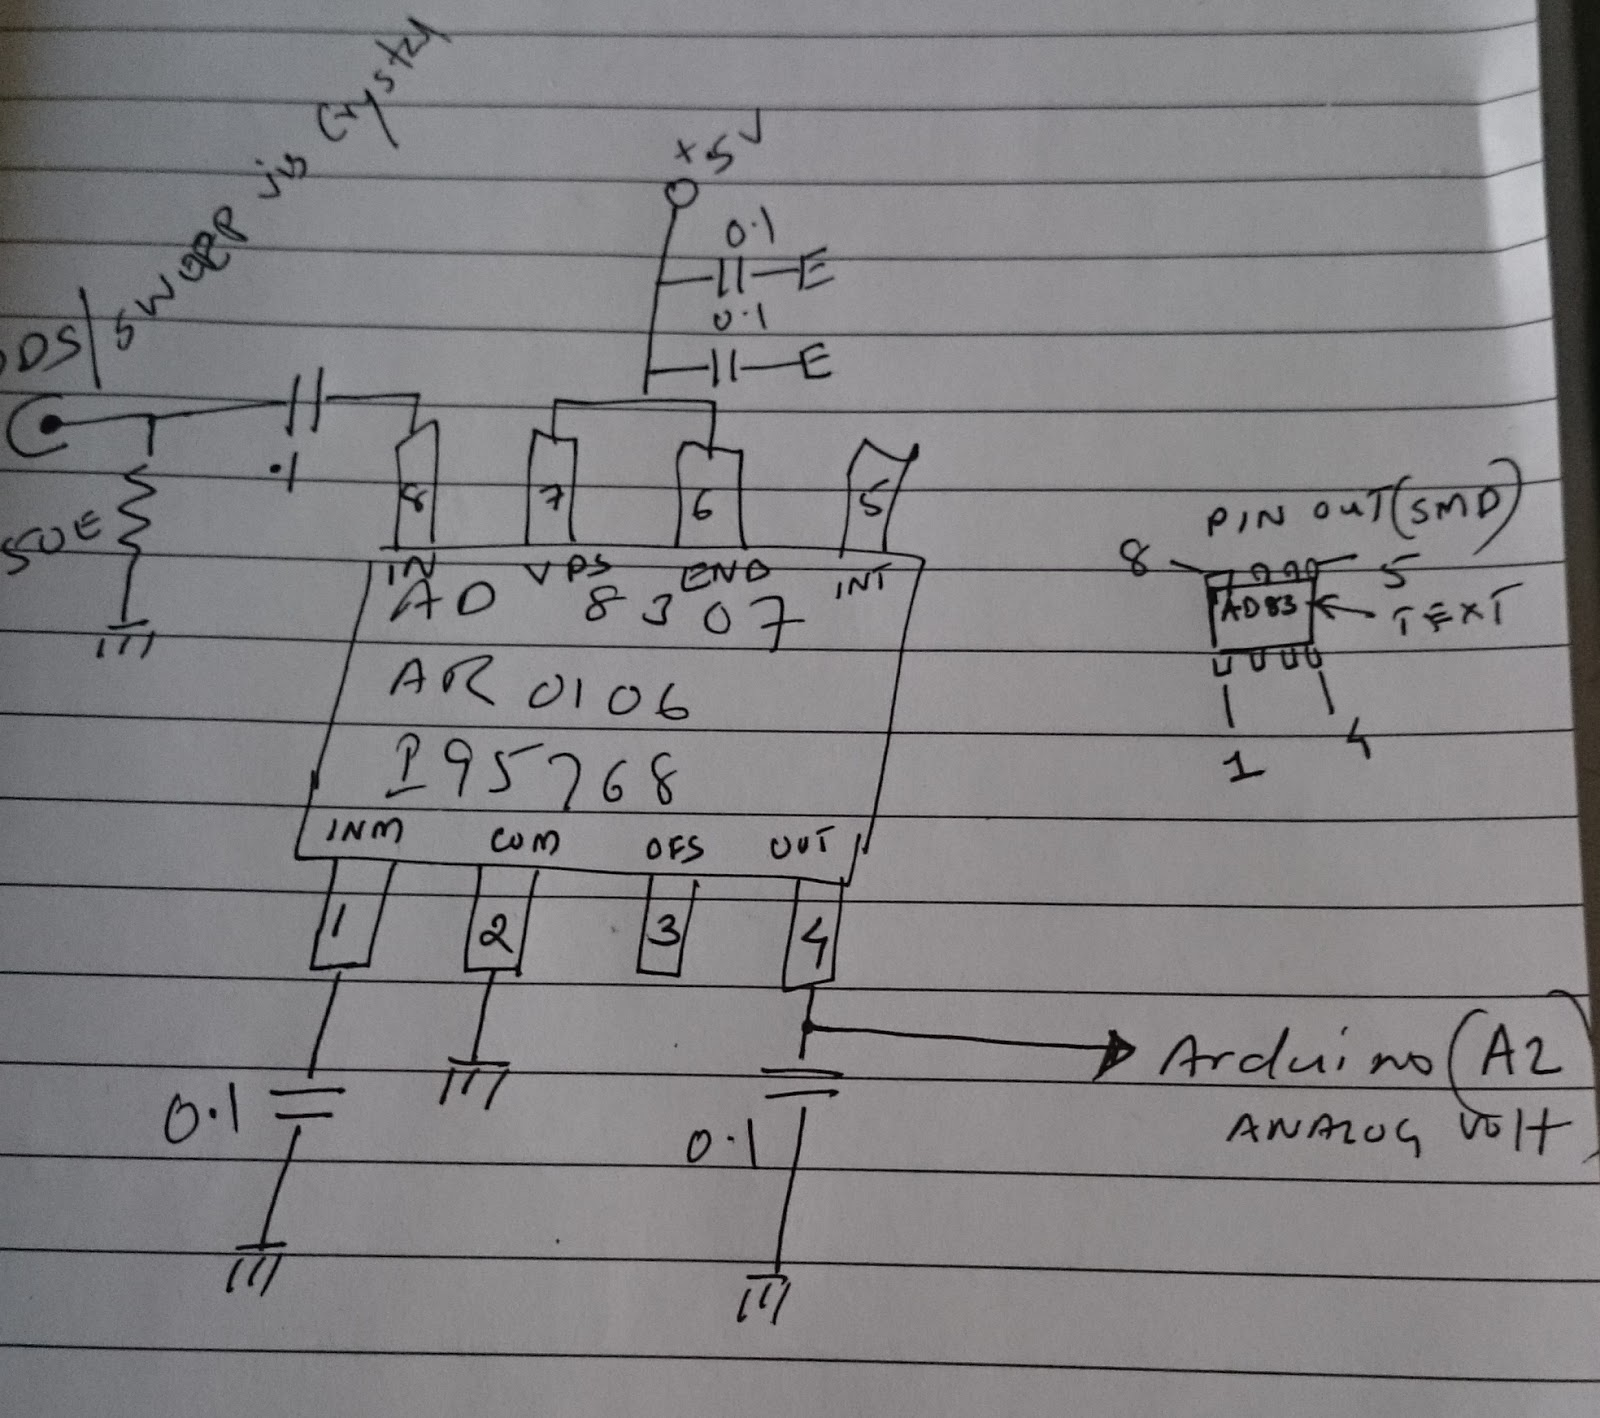 Learn on the fly : Simple AD8307 rf power meter for sweeper using